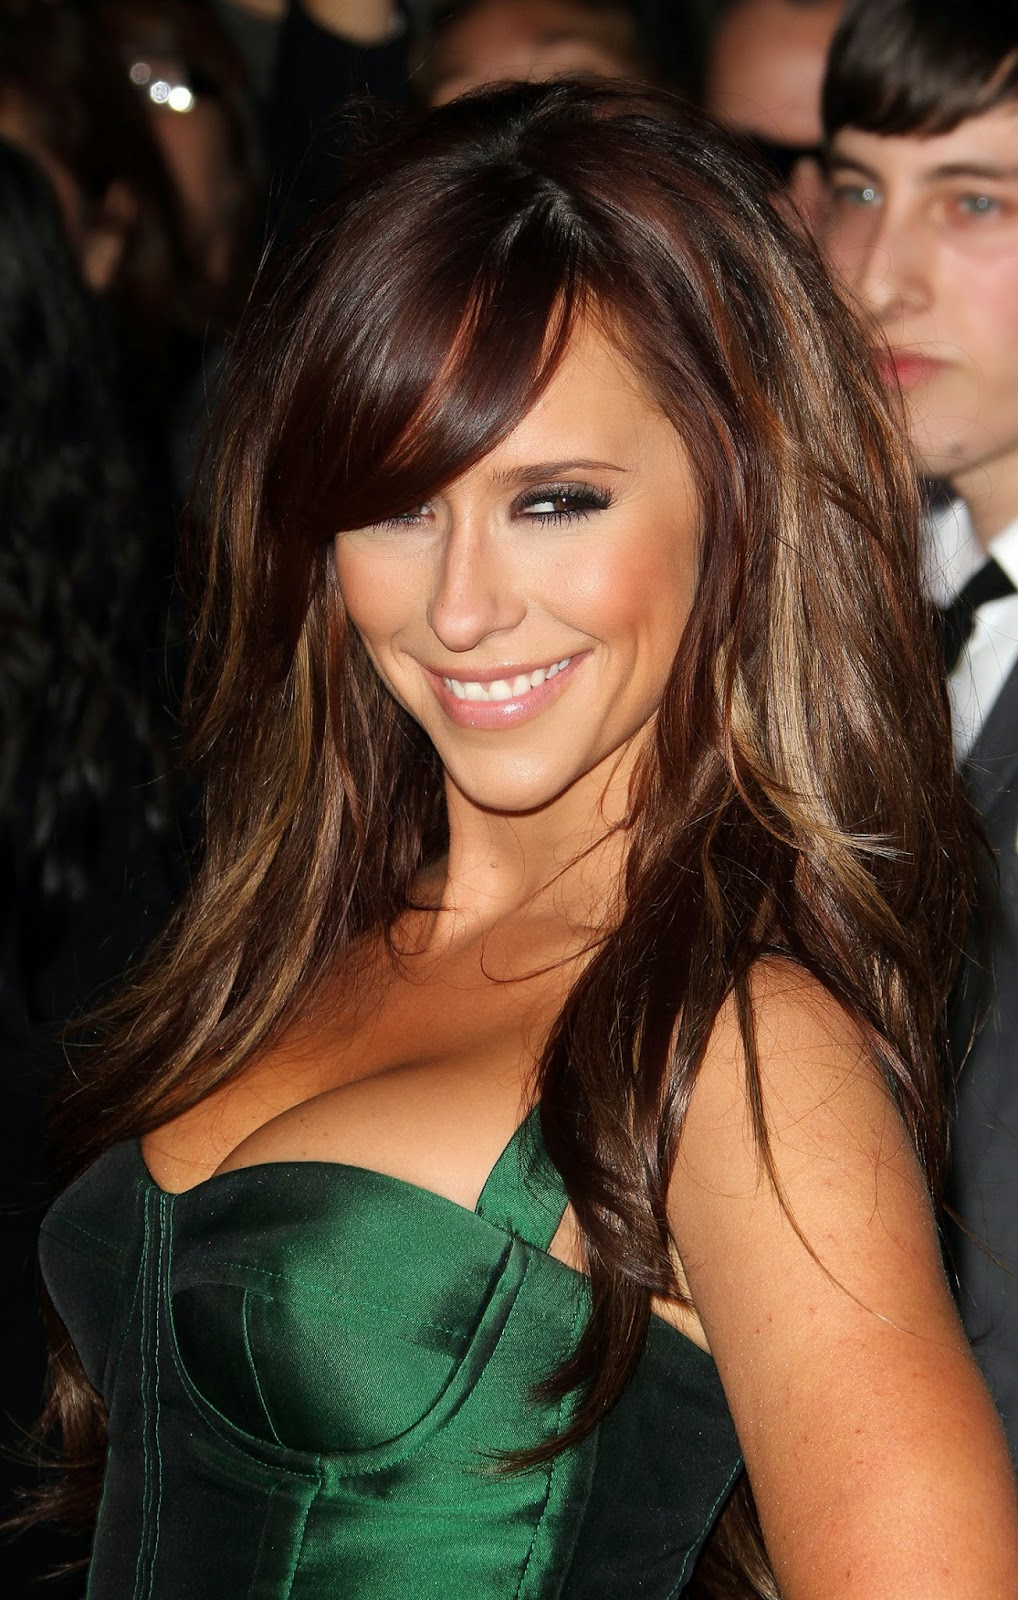 Wallpaper Hd Jennifer Love : Jennifer Love Hewitt HD Wallpapers HD Wallpapers (High Definition) Free Background